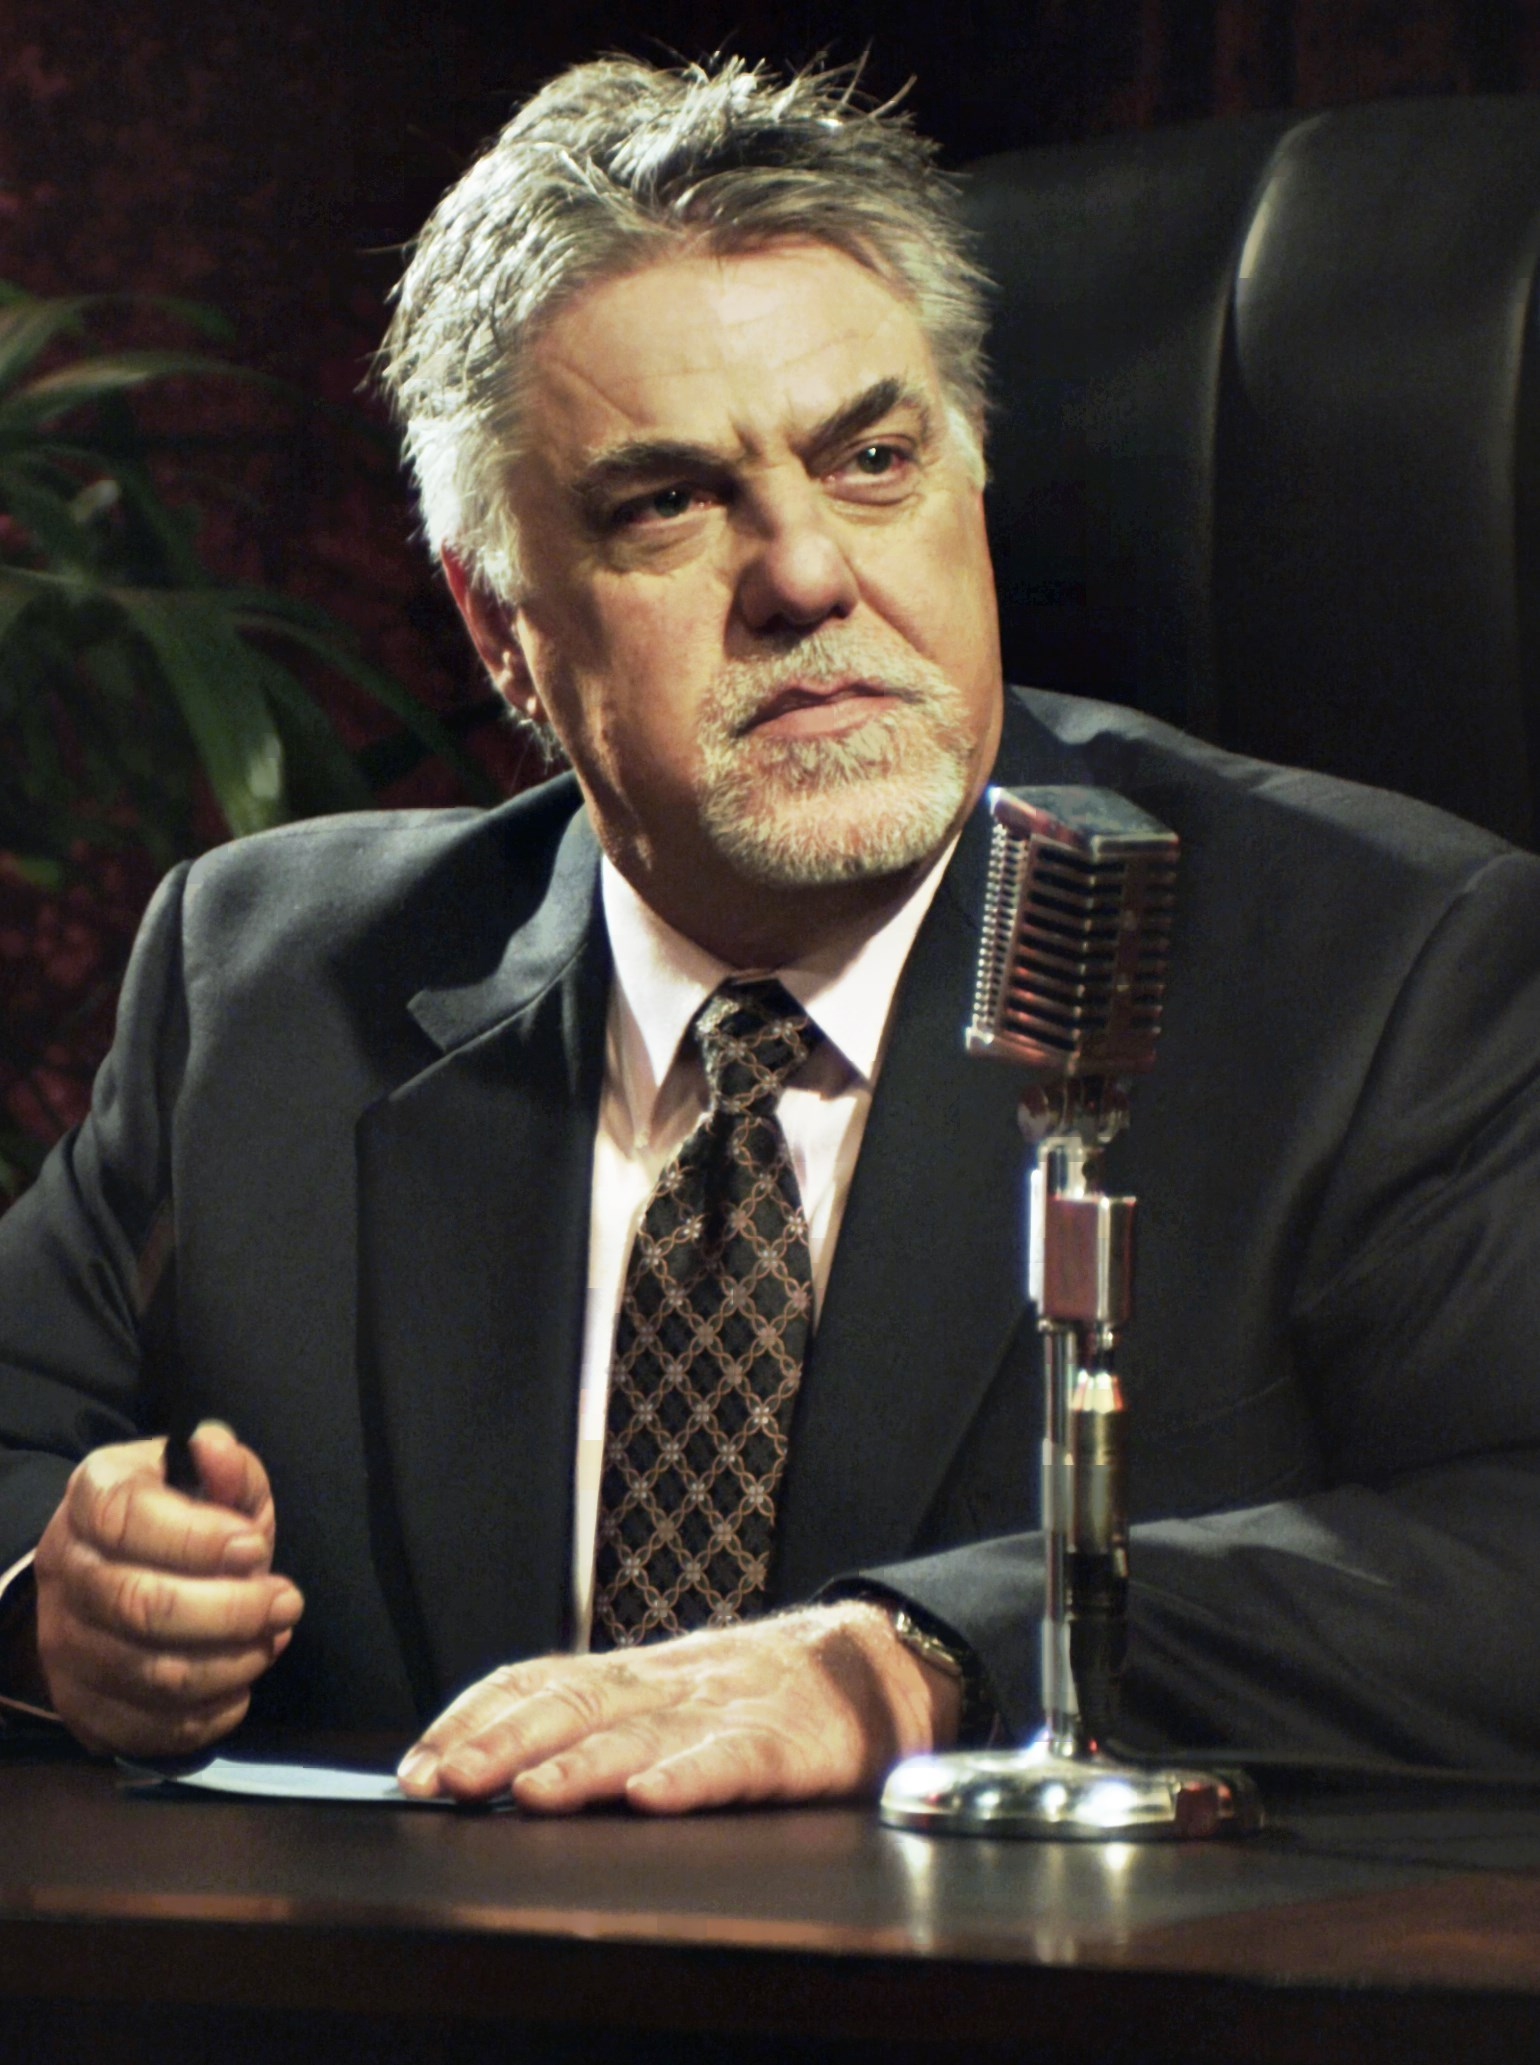 bruce mcgill miami vicebruce mcgill height, bruce mcgill, bruce mcgill movies, bruce mcgill net worth, bruce mcgill animal house, bruce mcgill leaving rizzoli and isles, bruce mcgill imdb, bruce mcgill wife, bruce mcgill singing, bruce mcgill music, bruce mcgill sister, bruce mcgill gloria lee, bruce mcgill miami vice, bruce mcgill photos, bruce mcgill twitter, bruce mcgill speaks spanish, bruce mcgill musik